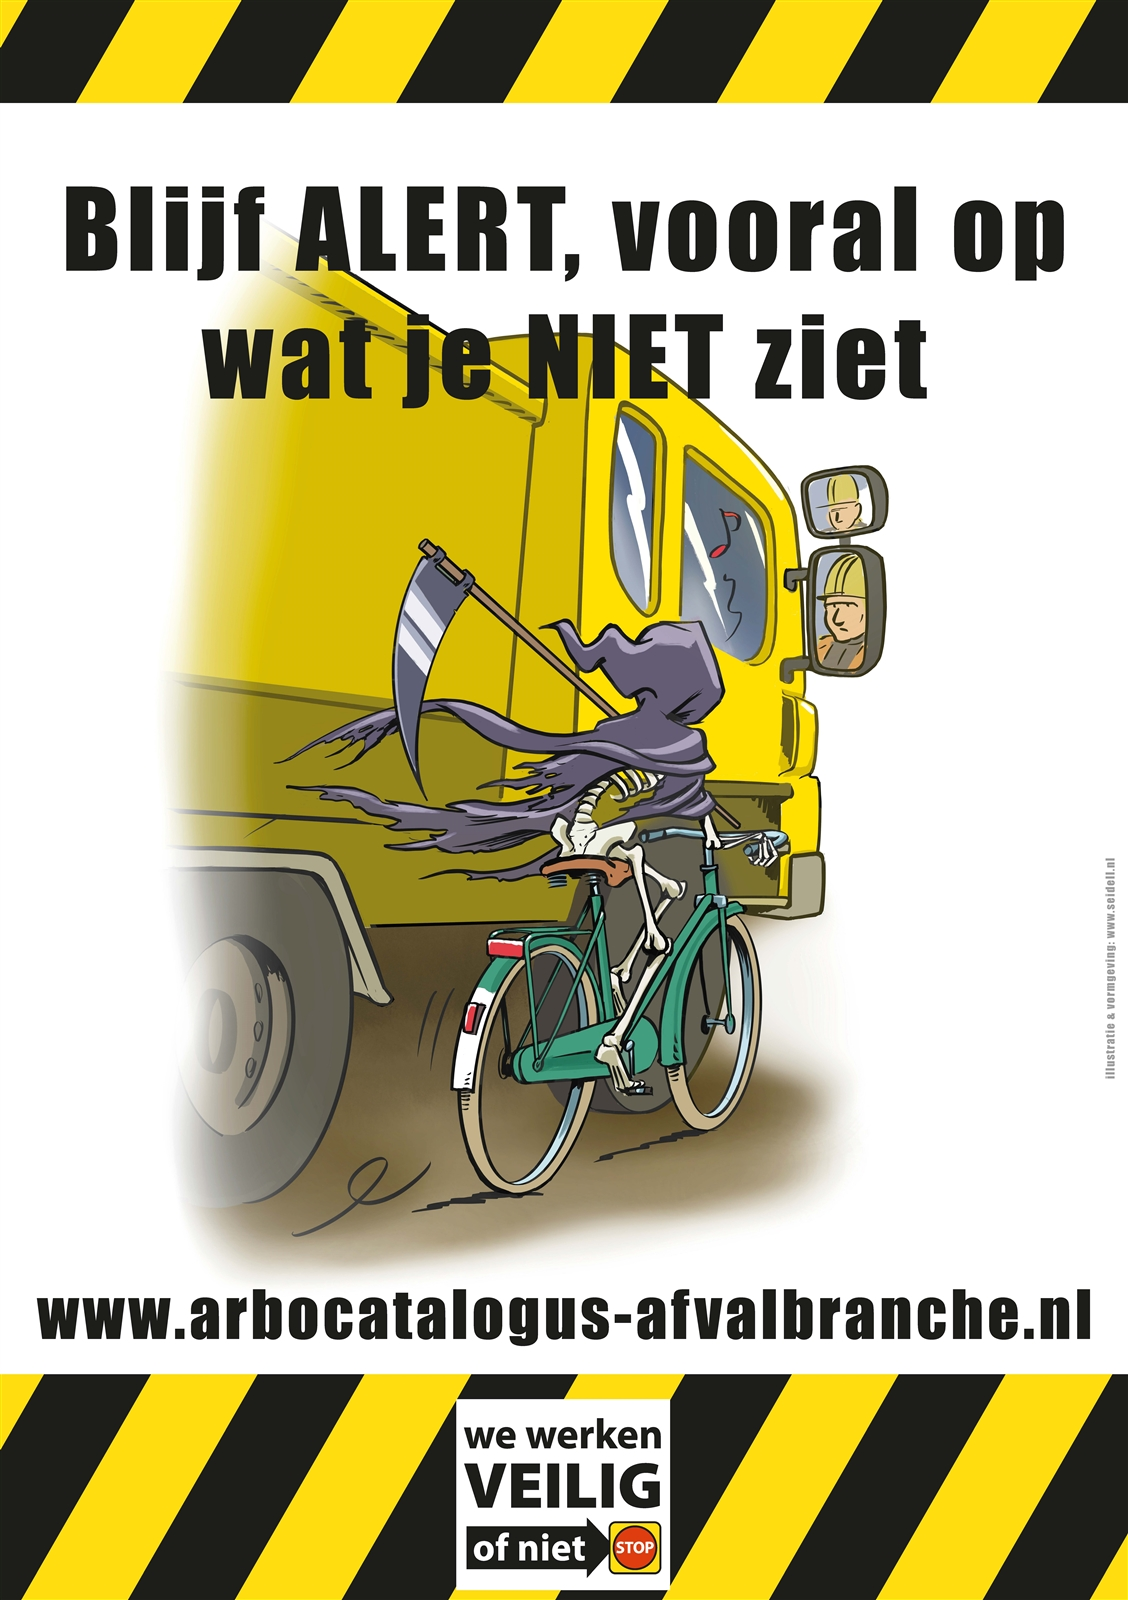 poster-verkeer-A1 - Arbo Catalogus